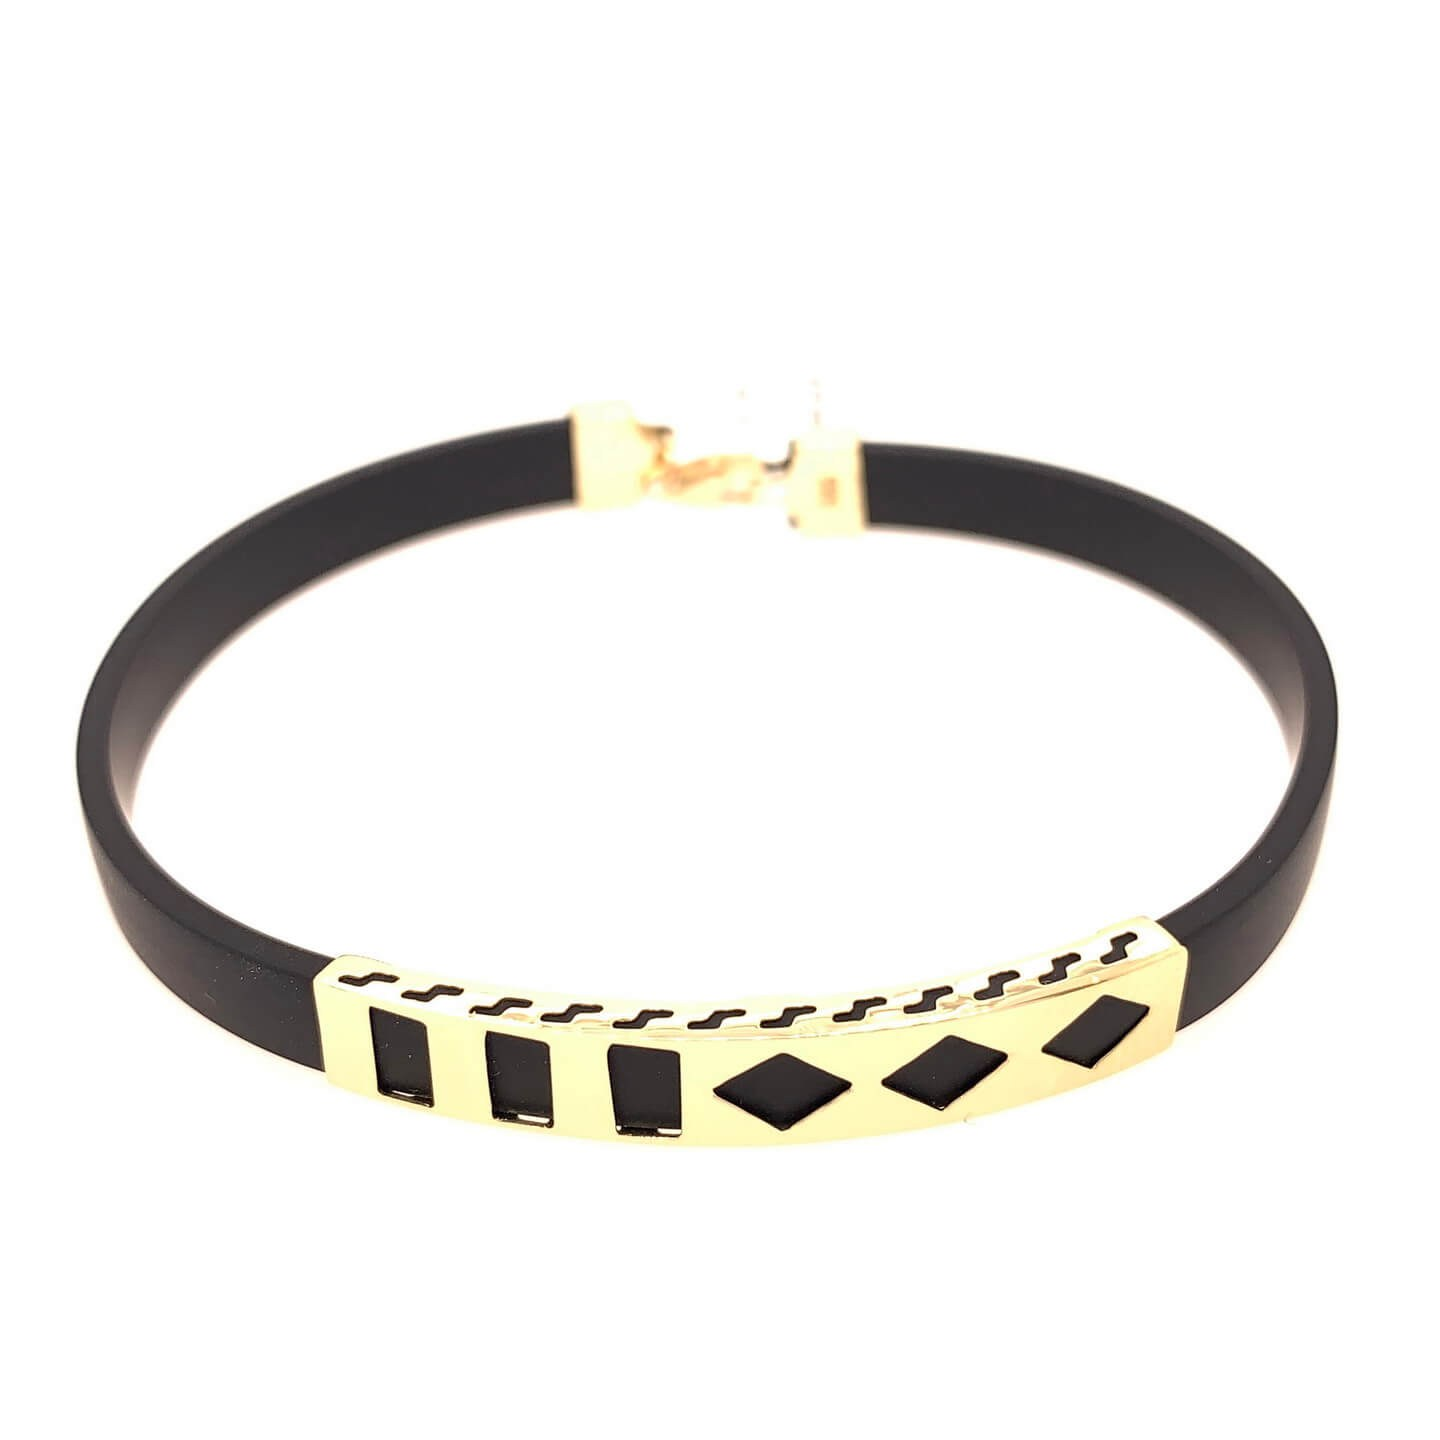 Men's rubber bracelet with K14 gold elements